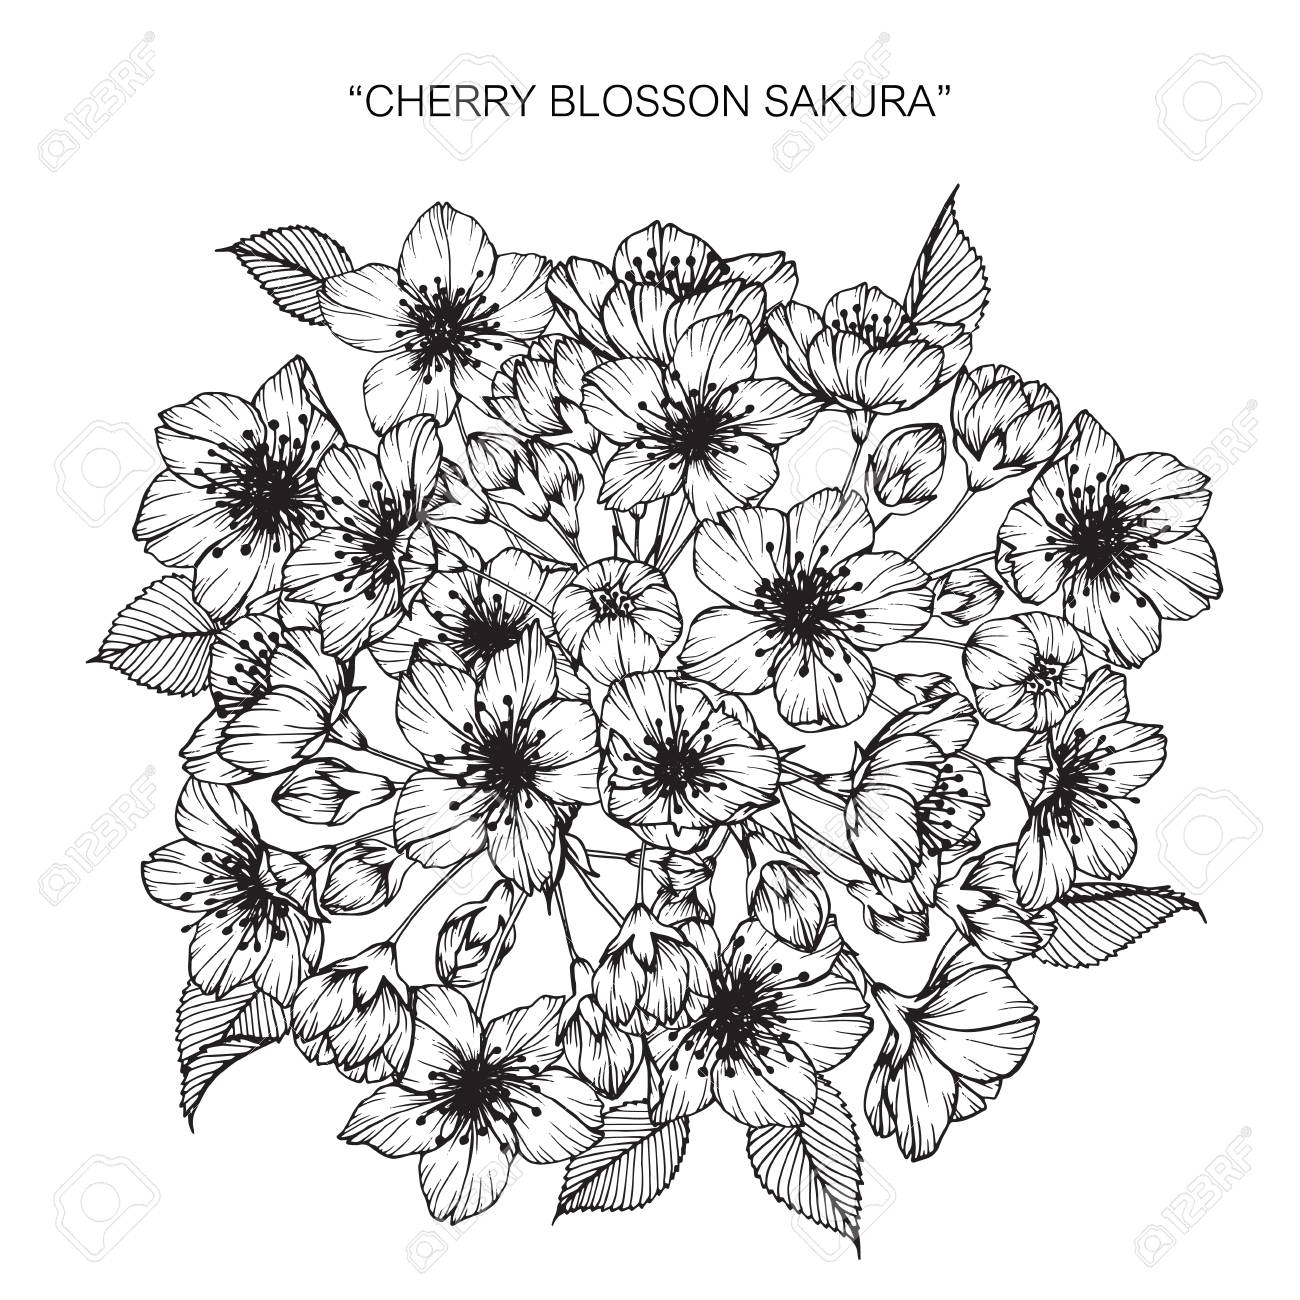 Bouquet of cherry blossom flowers drawing royalty free cliparts bouquet of cherry blossom flowers drawing stock vector 88414512 izmirmasajfo